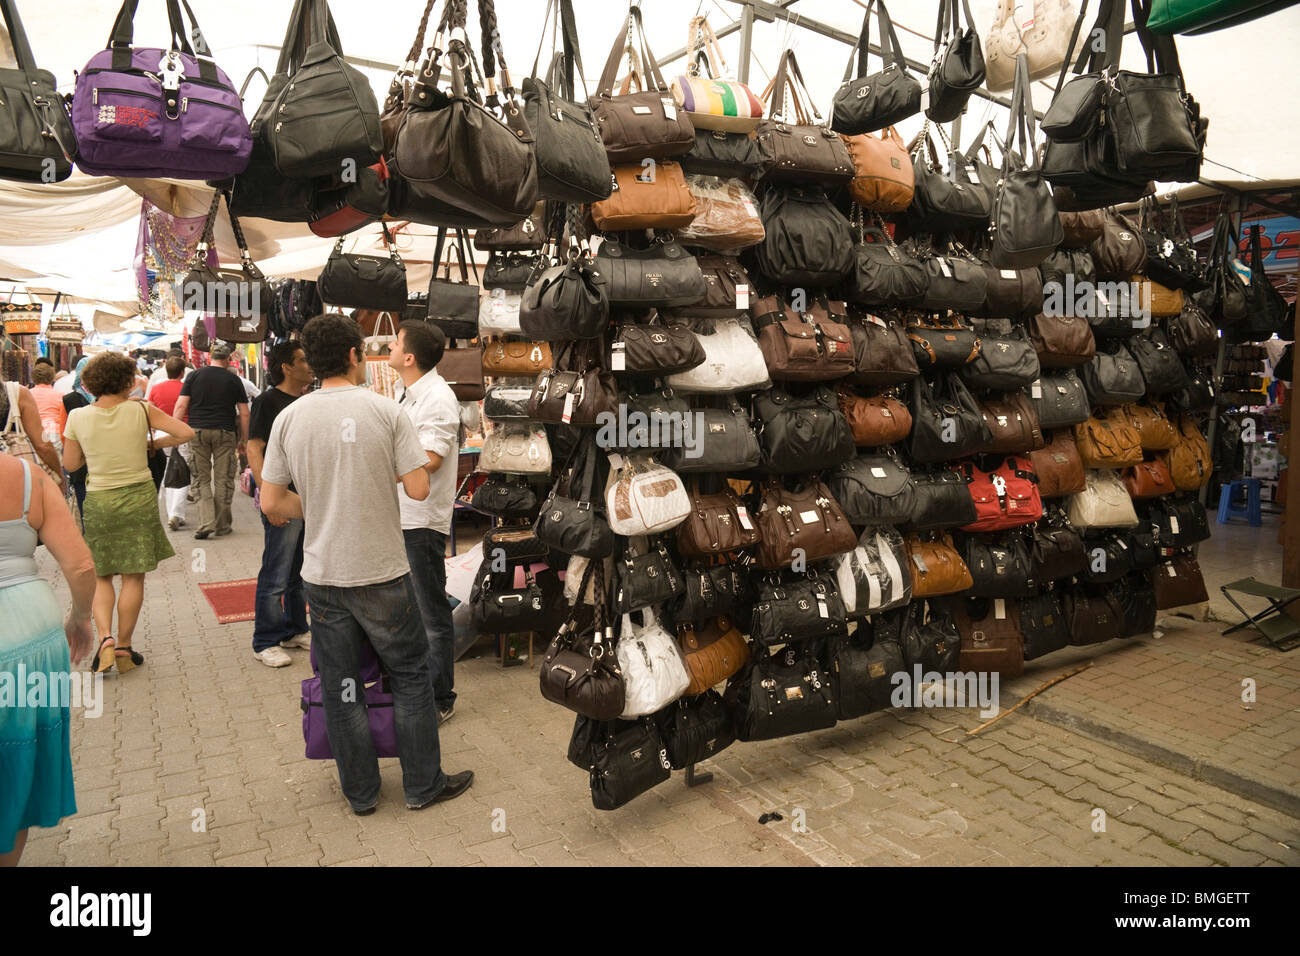 1be2dde1208d Turkey Antalya - Manavgat market - fake or copy leather bags with Chanel,  Prada,